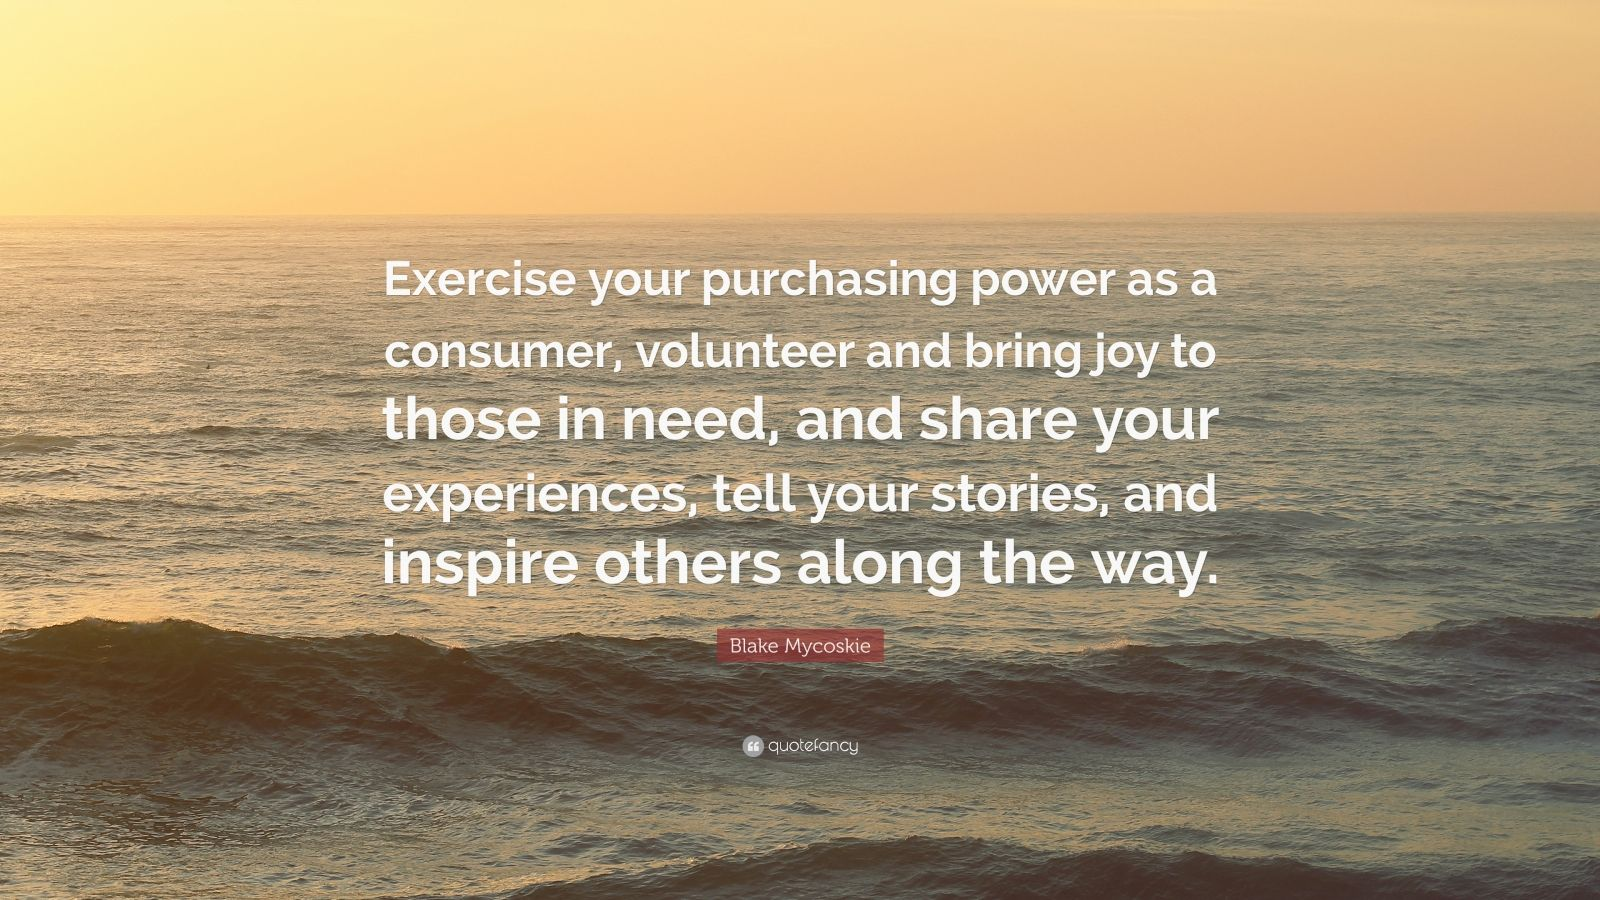 "Blake Mycoskie Quote: ""Exercise your purchasing power as a consumer, volunteer and bring joy to those in need, and share your experiences, tell your stories, and inspire others along the way."""